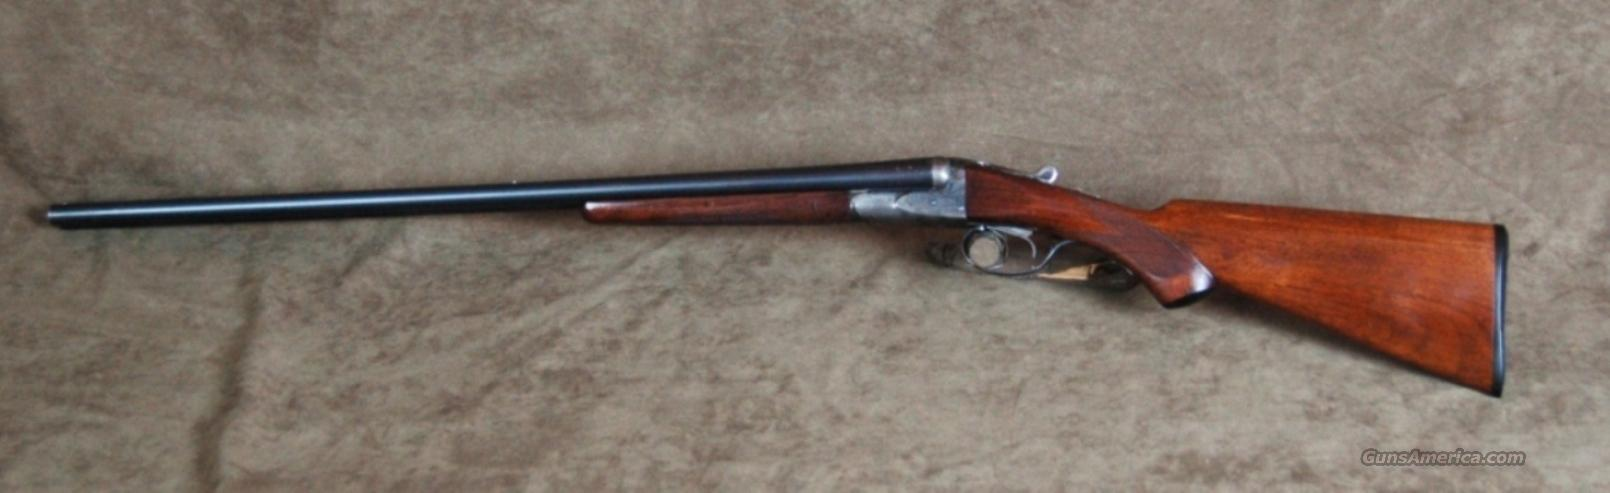 Fox Sterlingworth 20ga., 6LBS., GOOD DIMENSIONS, 50% CASE COLOR, TIGHT!  Guns > Shotguns > Fox Shotguns